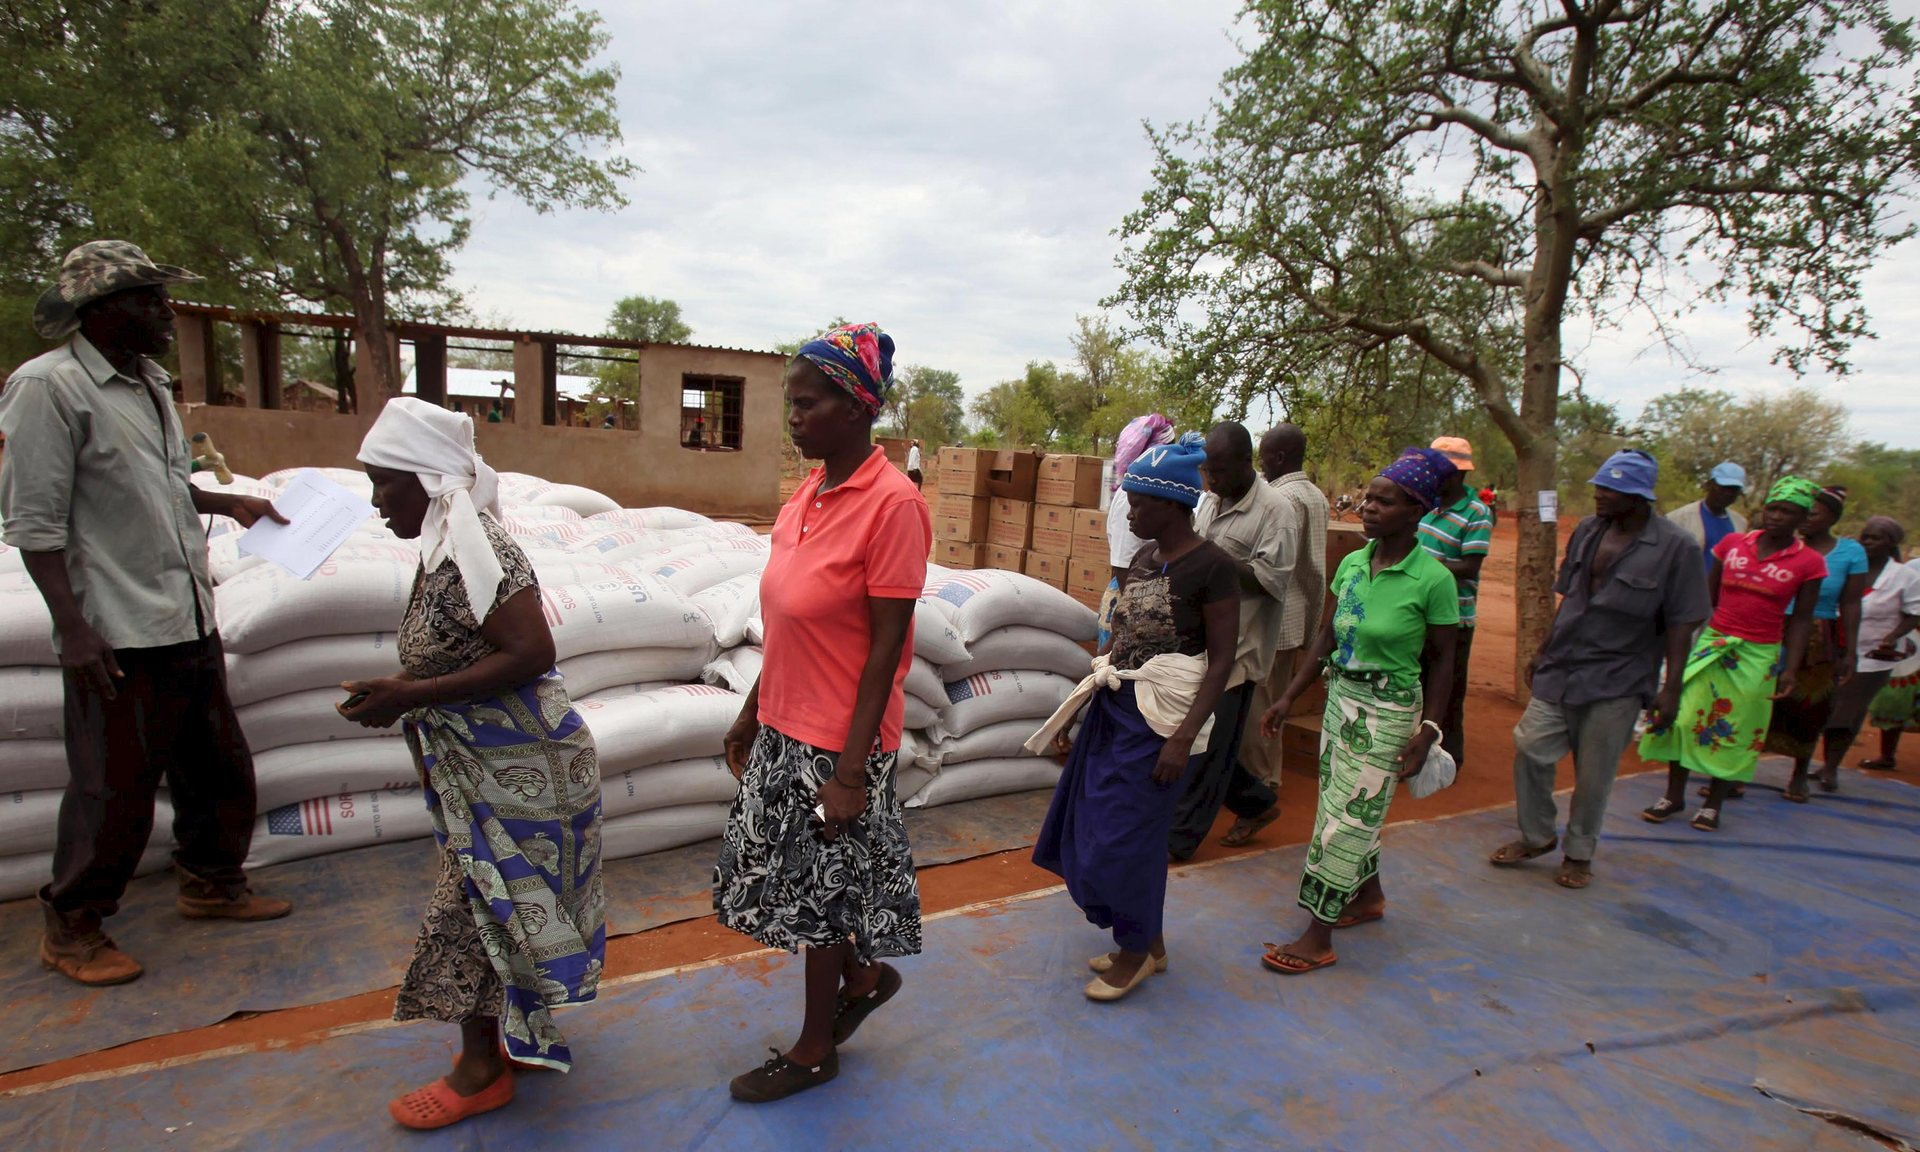 Villagers in Masvingo collect monthly rations provided by the World Food Programme. Drought has created a major food crisis in Zimbabwe. Photograph: Philimon Bulawayo / Reuters/Reuters